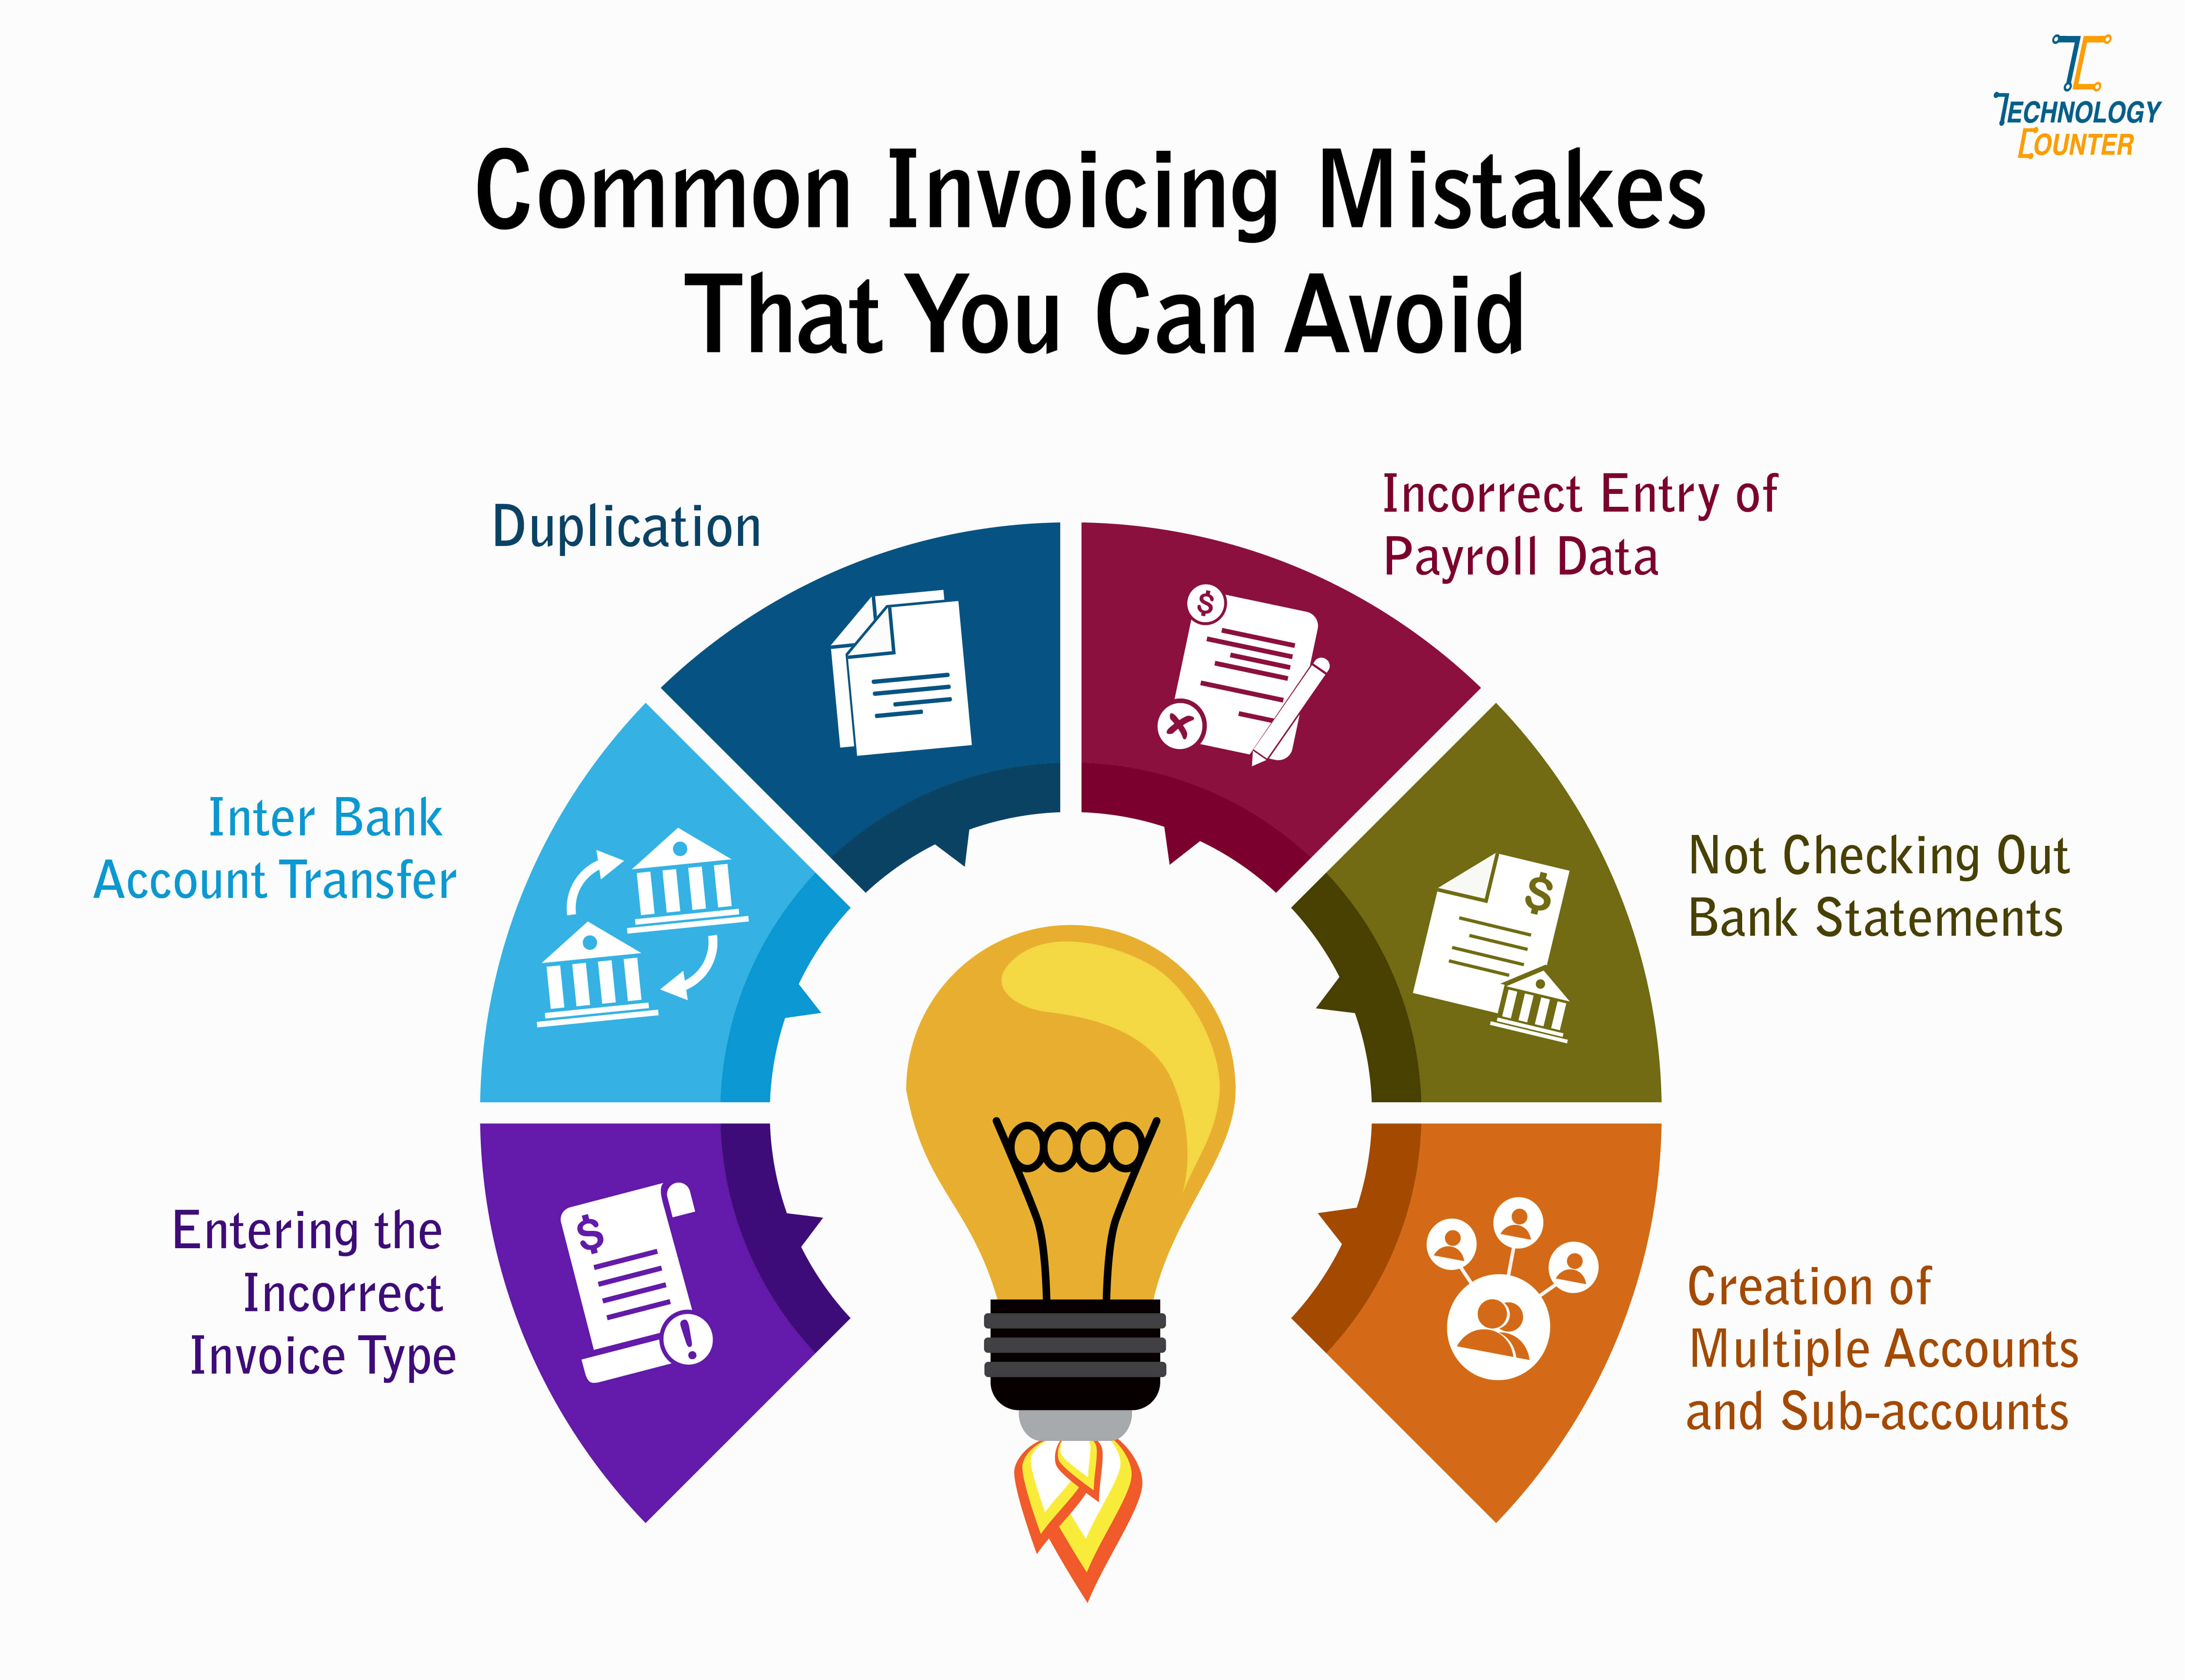 Common Invoicing Mistakes That You Can Avoid